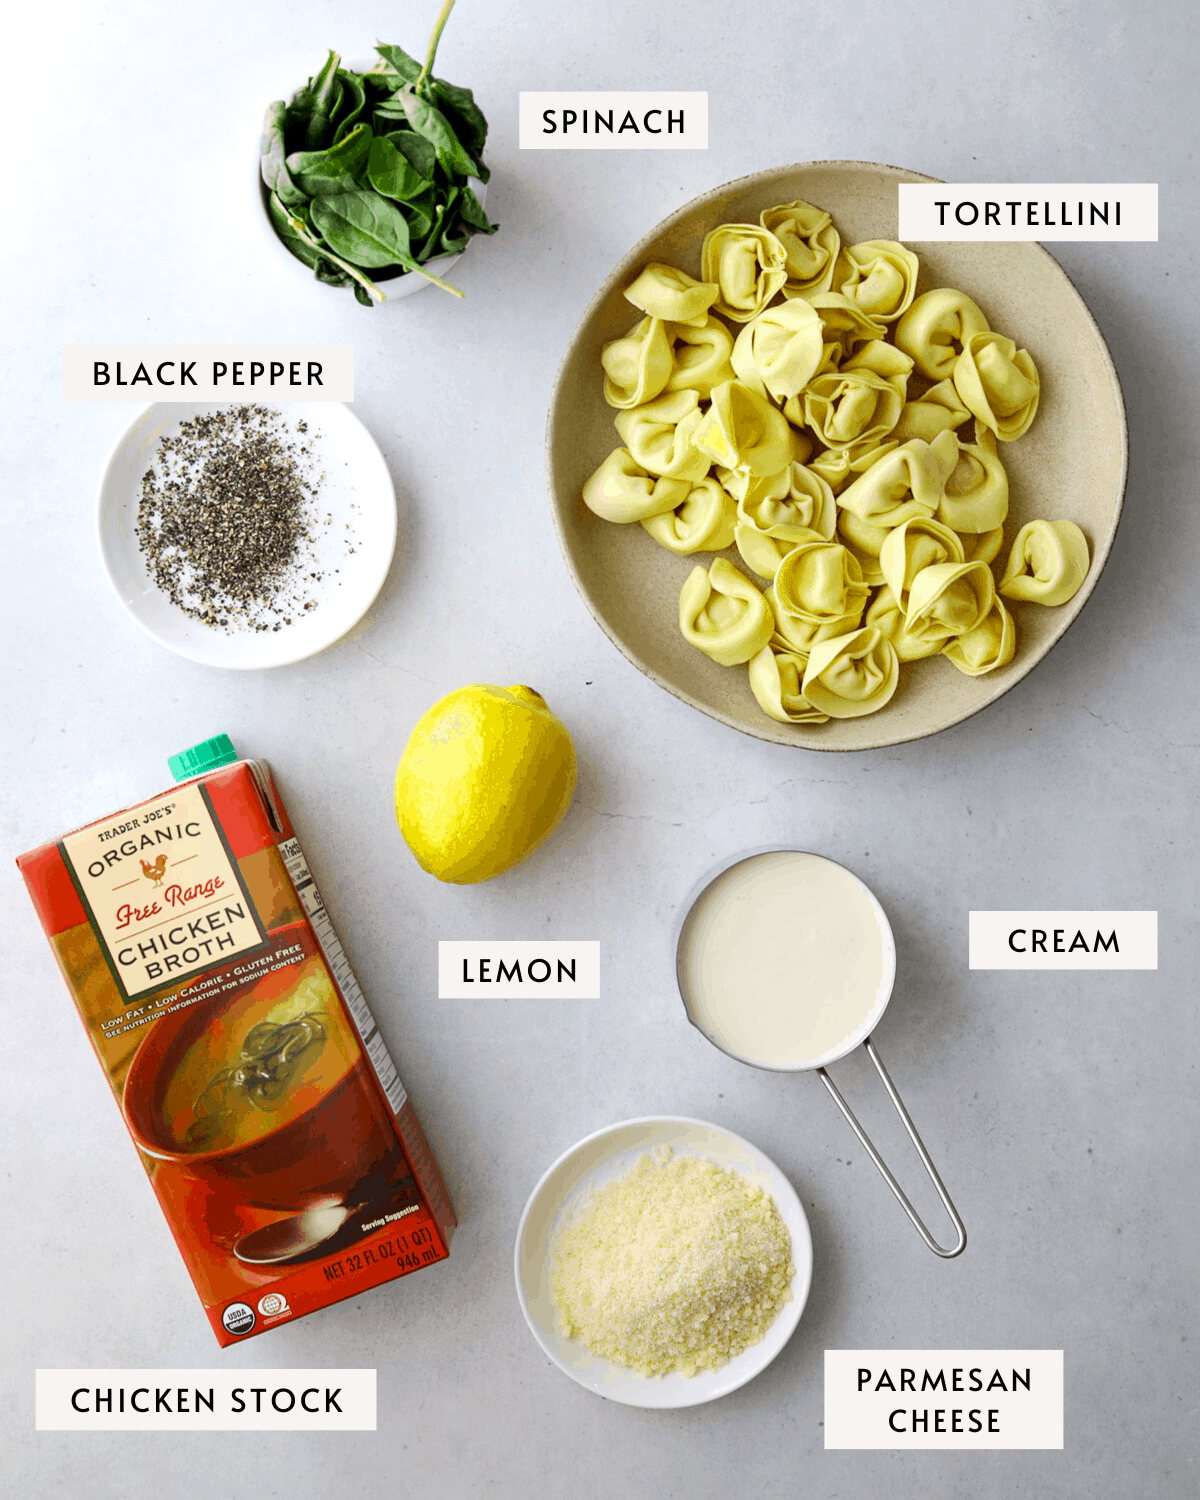 soup ingredients: a bowl of tortellini, a box of chicken broth, a white bowl with parmesan cheese, a lemon, a cup of cream, black pepper in a white bowl